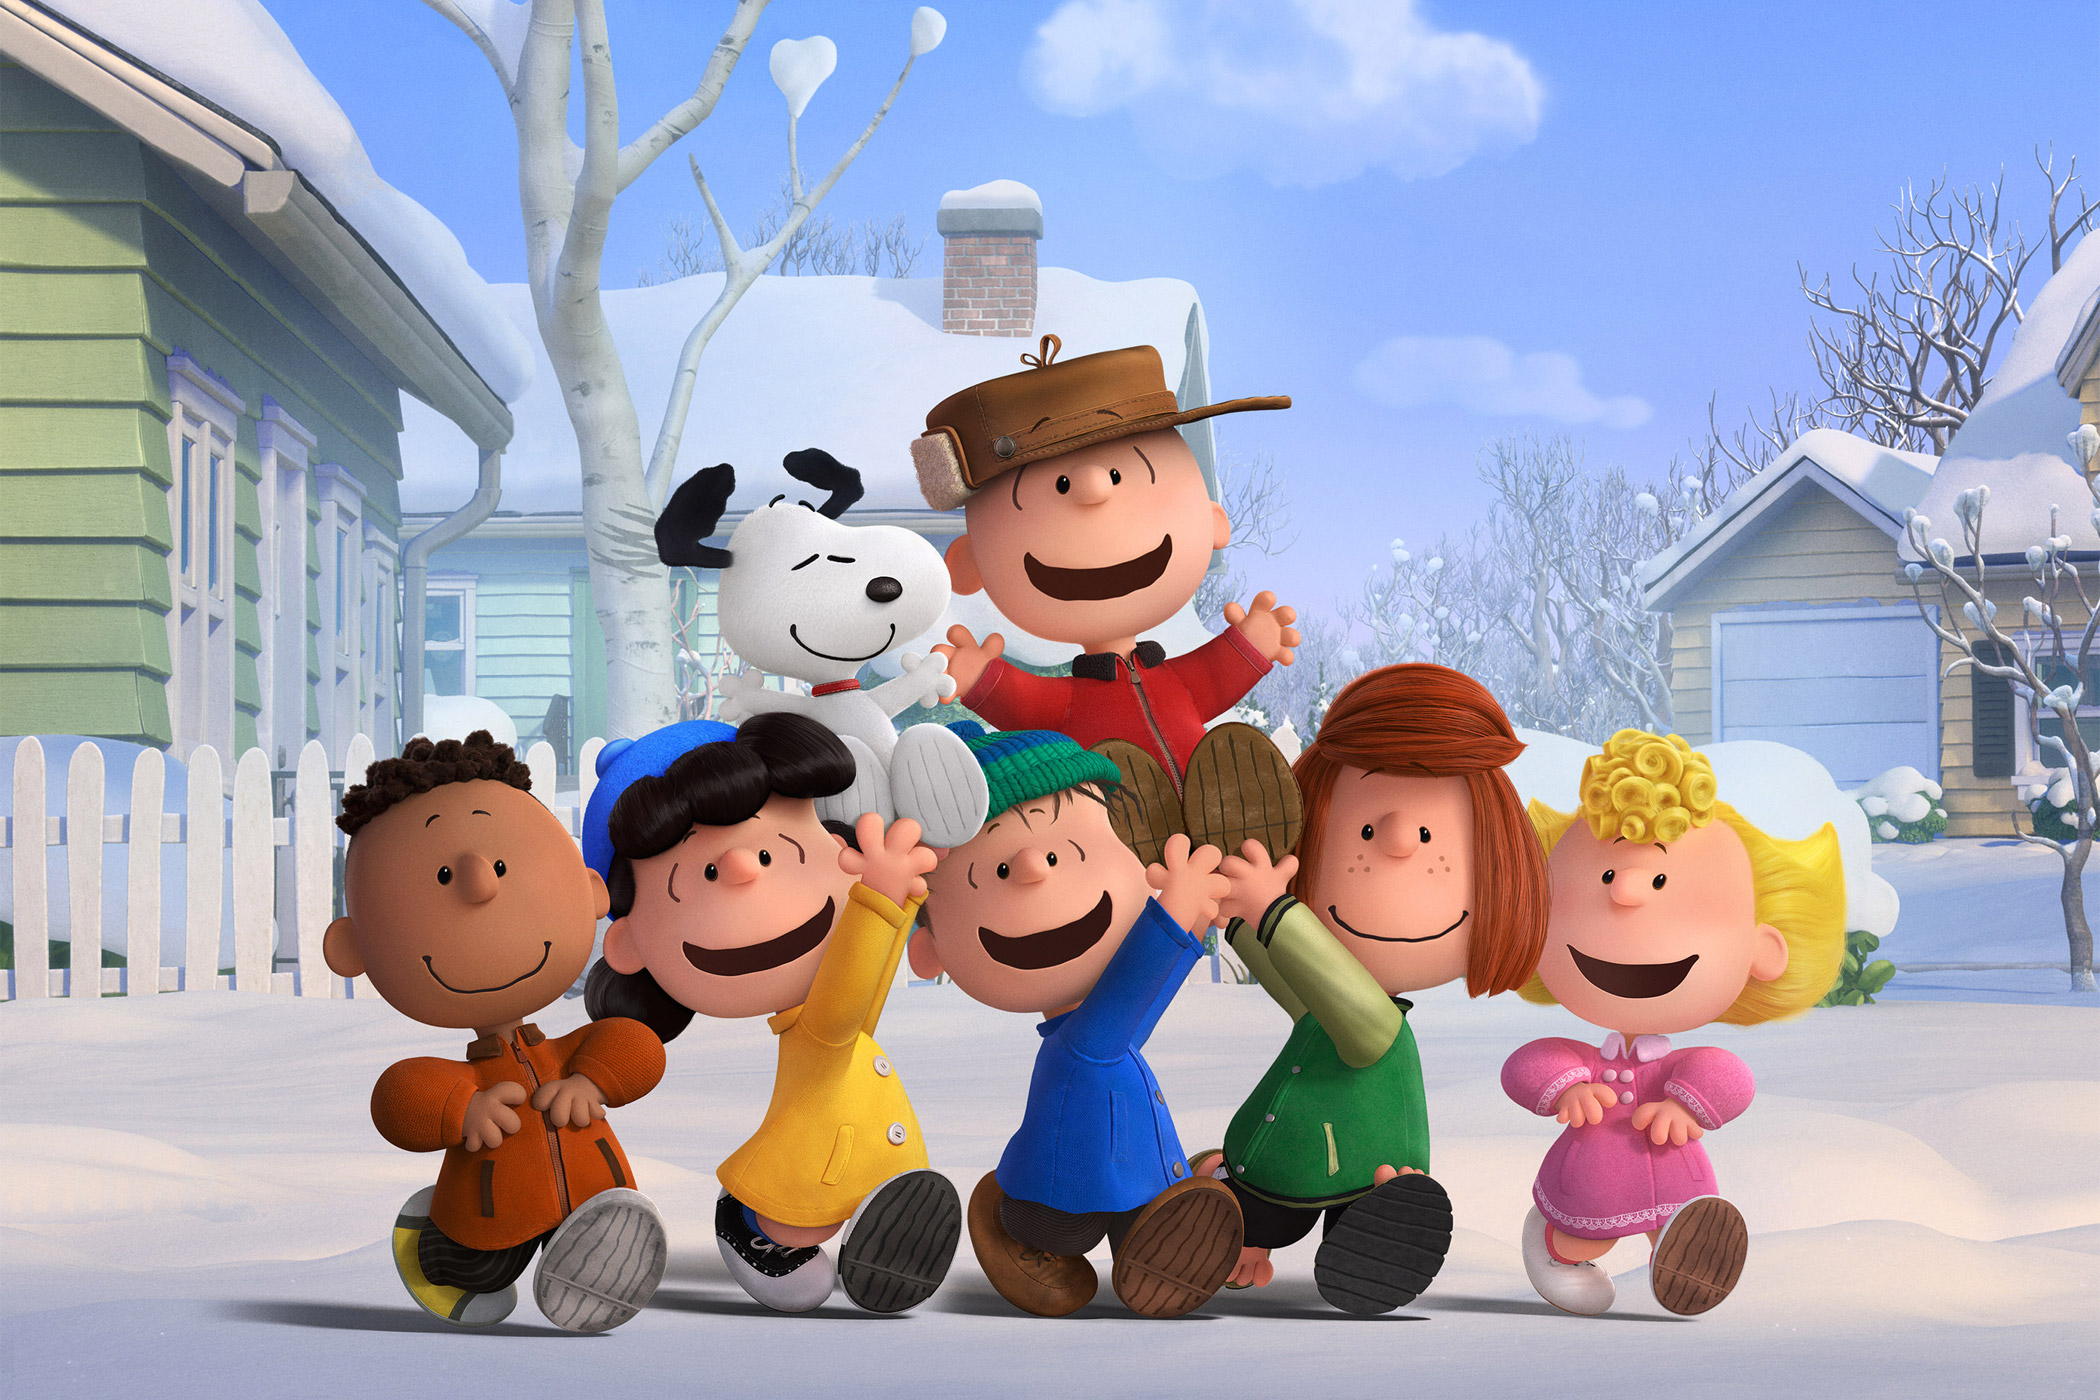 Charlie Brown, Snoopy and the Peanuts gang (Franklin, Lucy, Linus, Peppermint Patty and Sally) revel in a snow day.